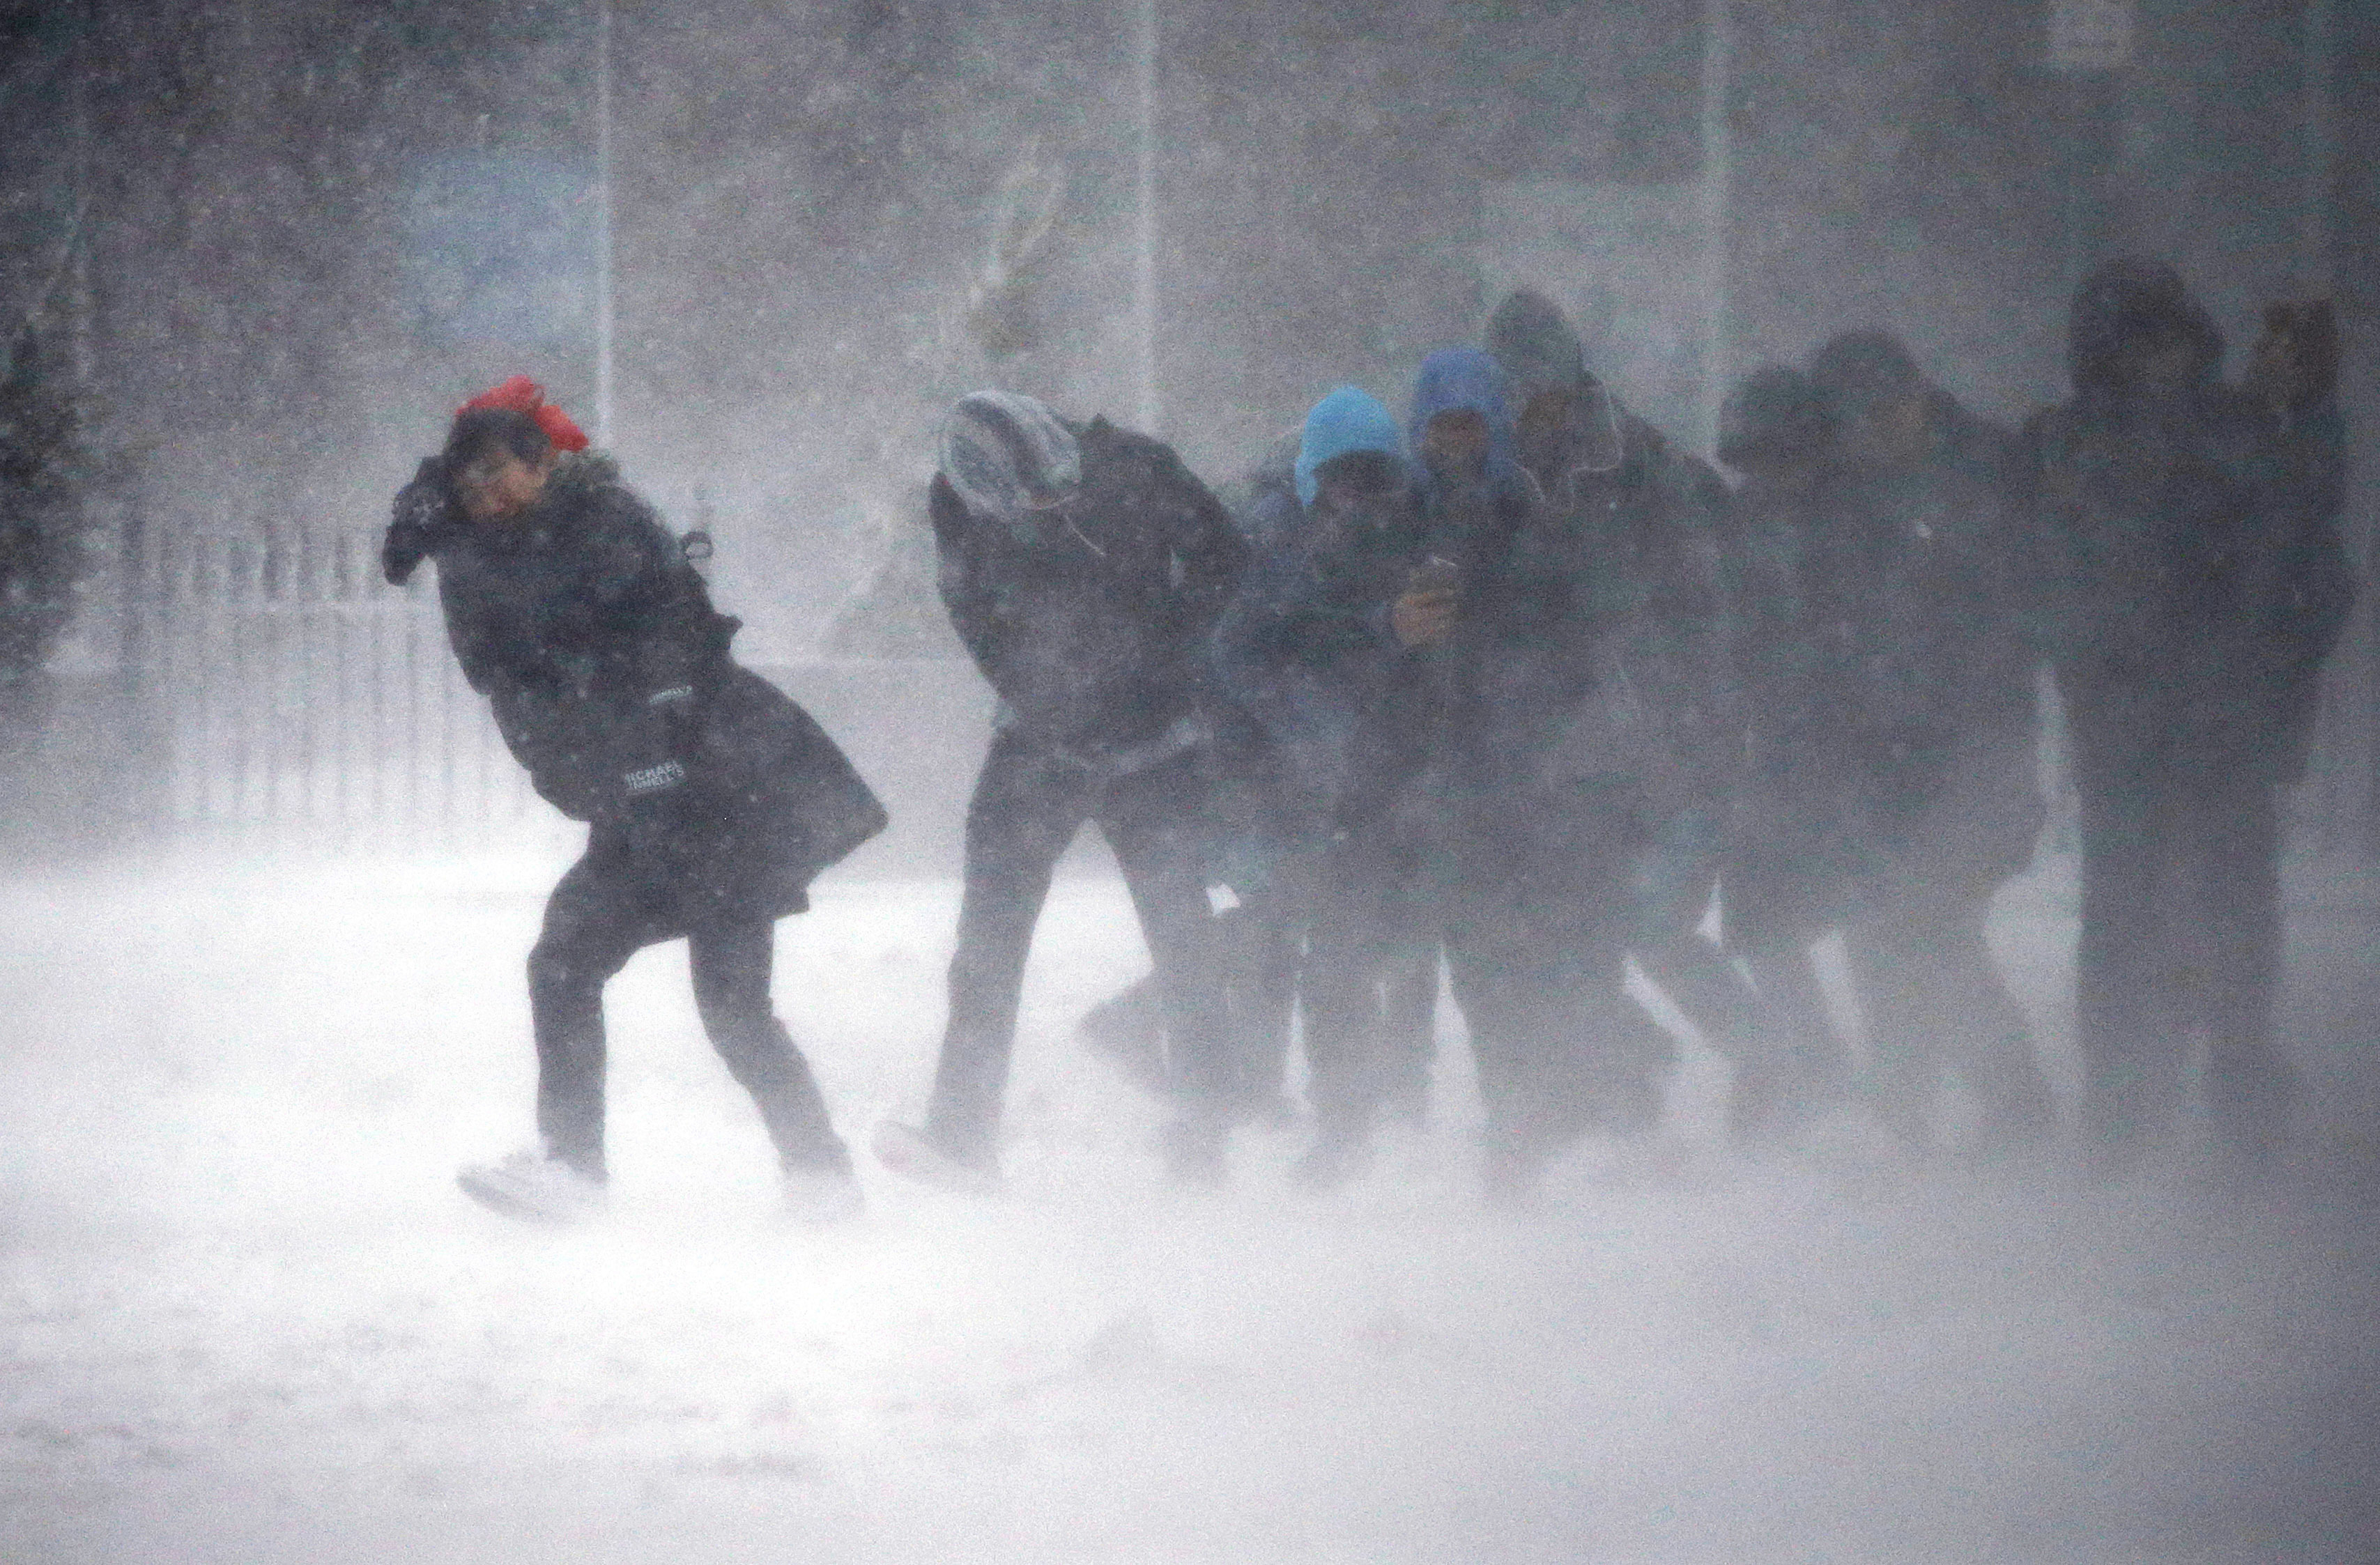 People struggle to walk in the blowing snow during a winter storm in Boston on March 14, 2017. (AP Photo/Michael Dwyer)